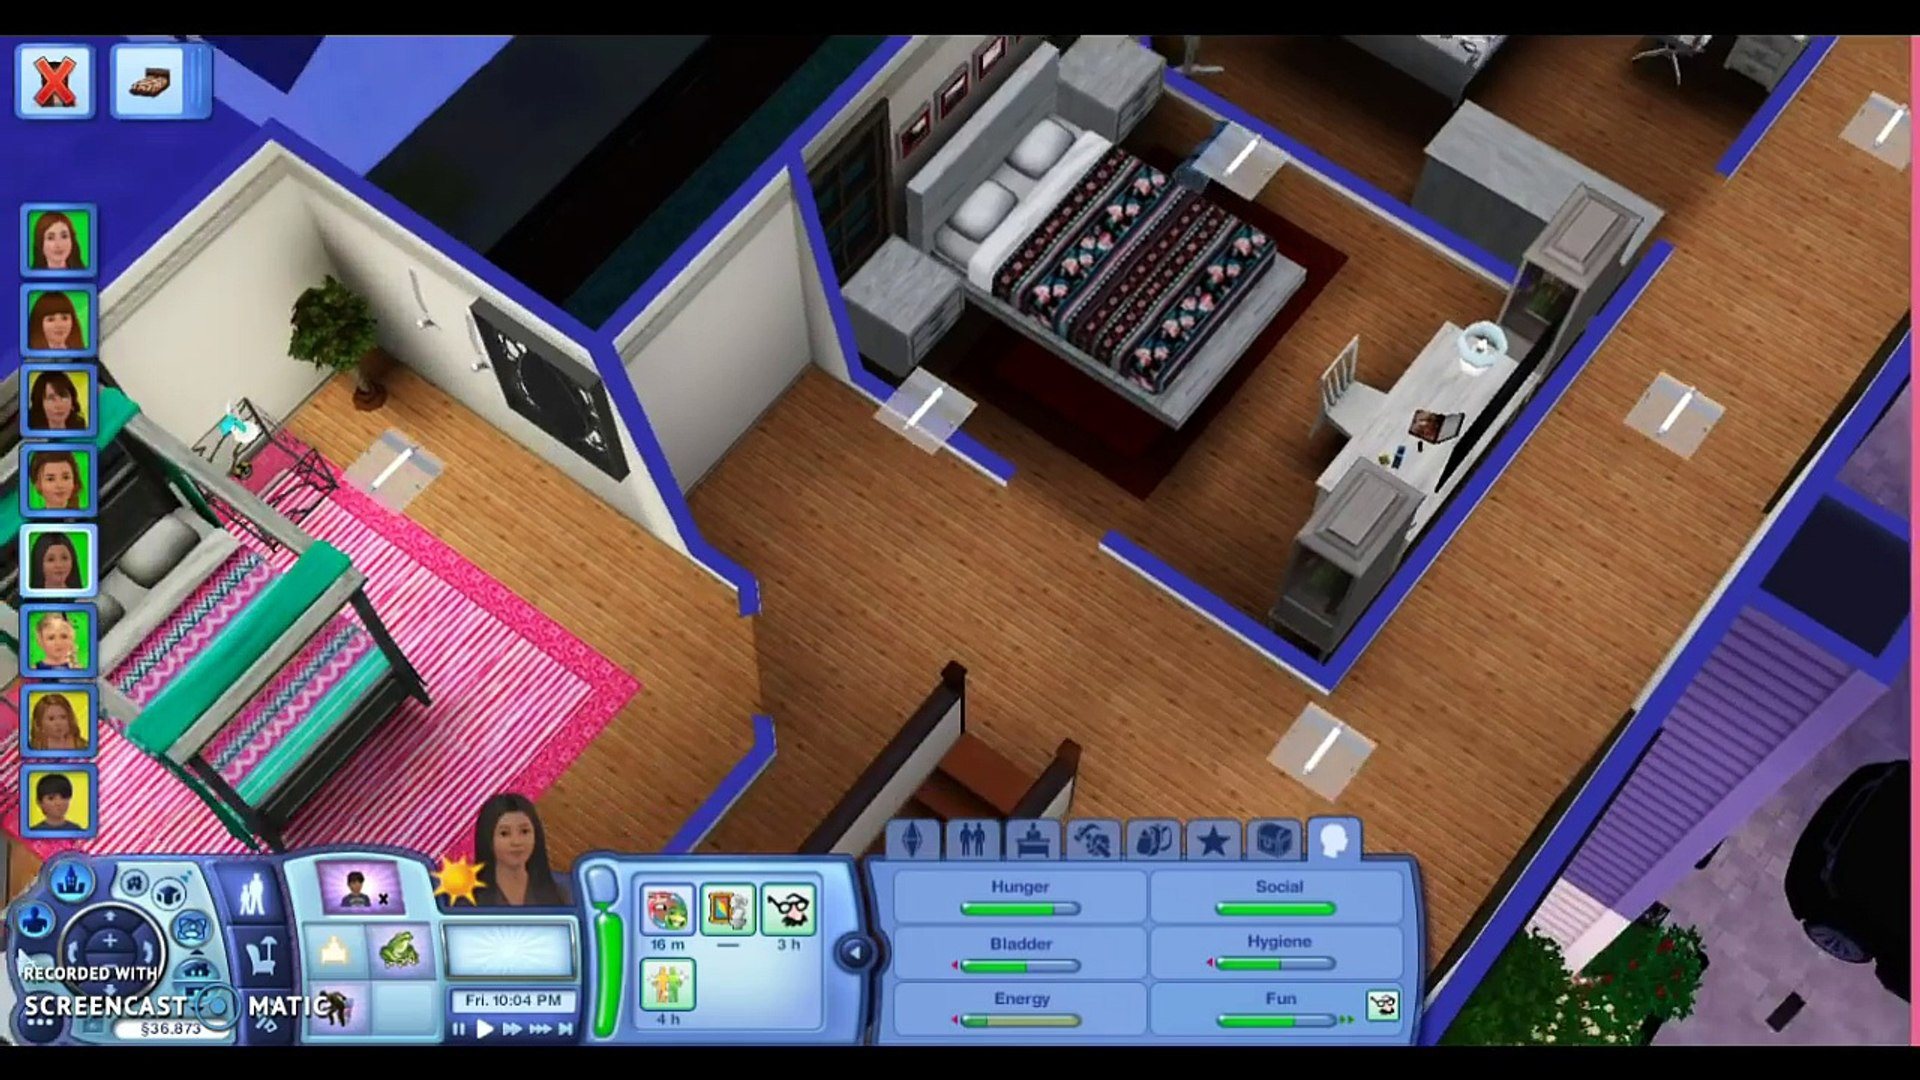 AMERICAN GIRL DOLL SLEEPOVER // American Girl Dolls Living the AG life Sims 3 Lets Play